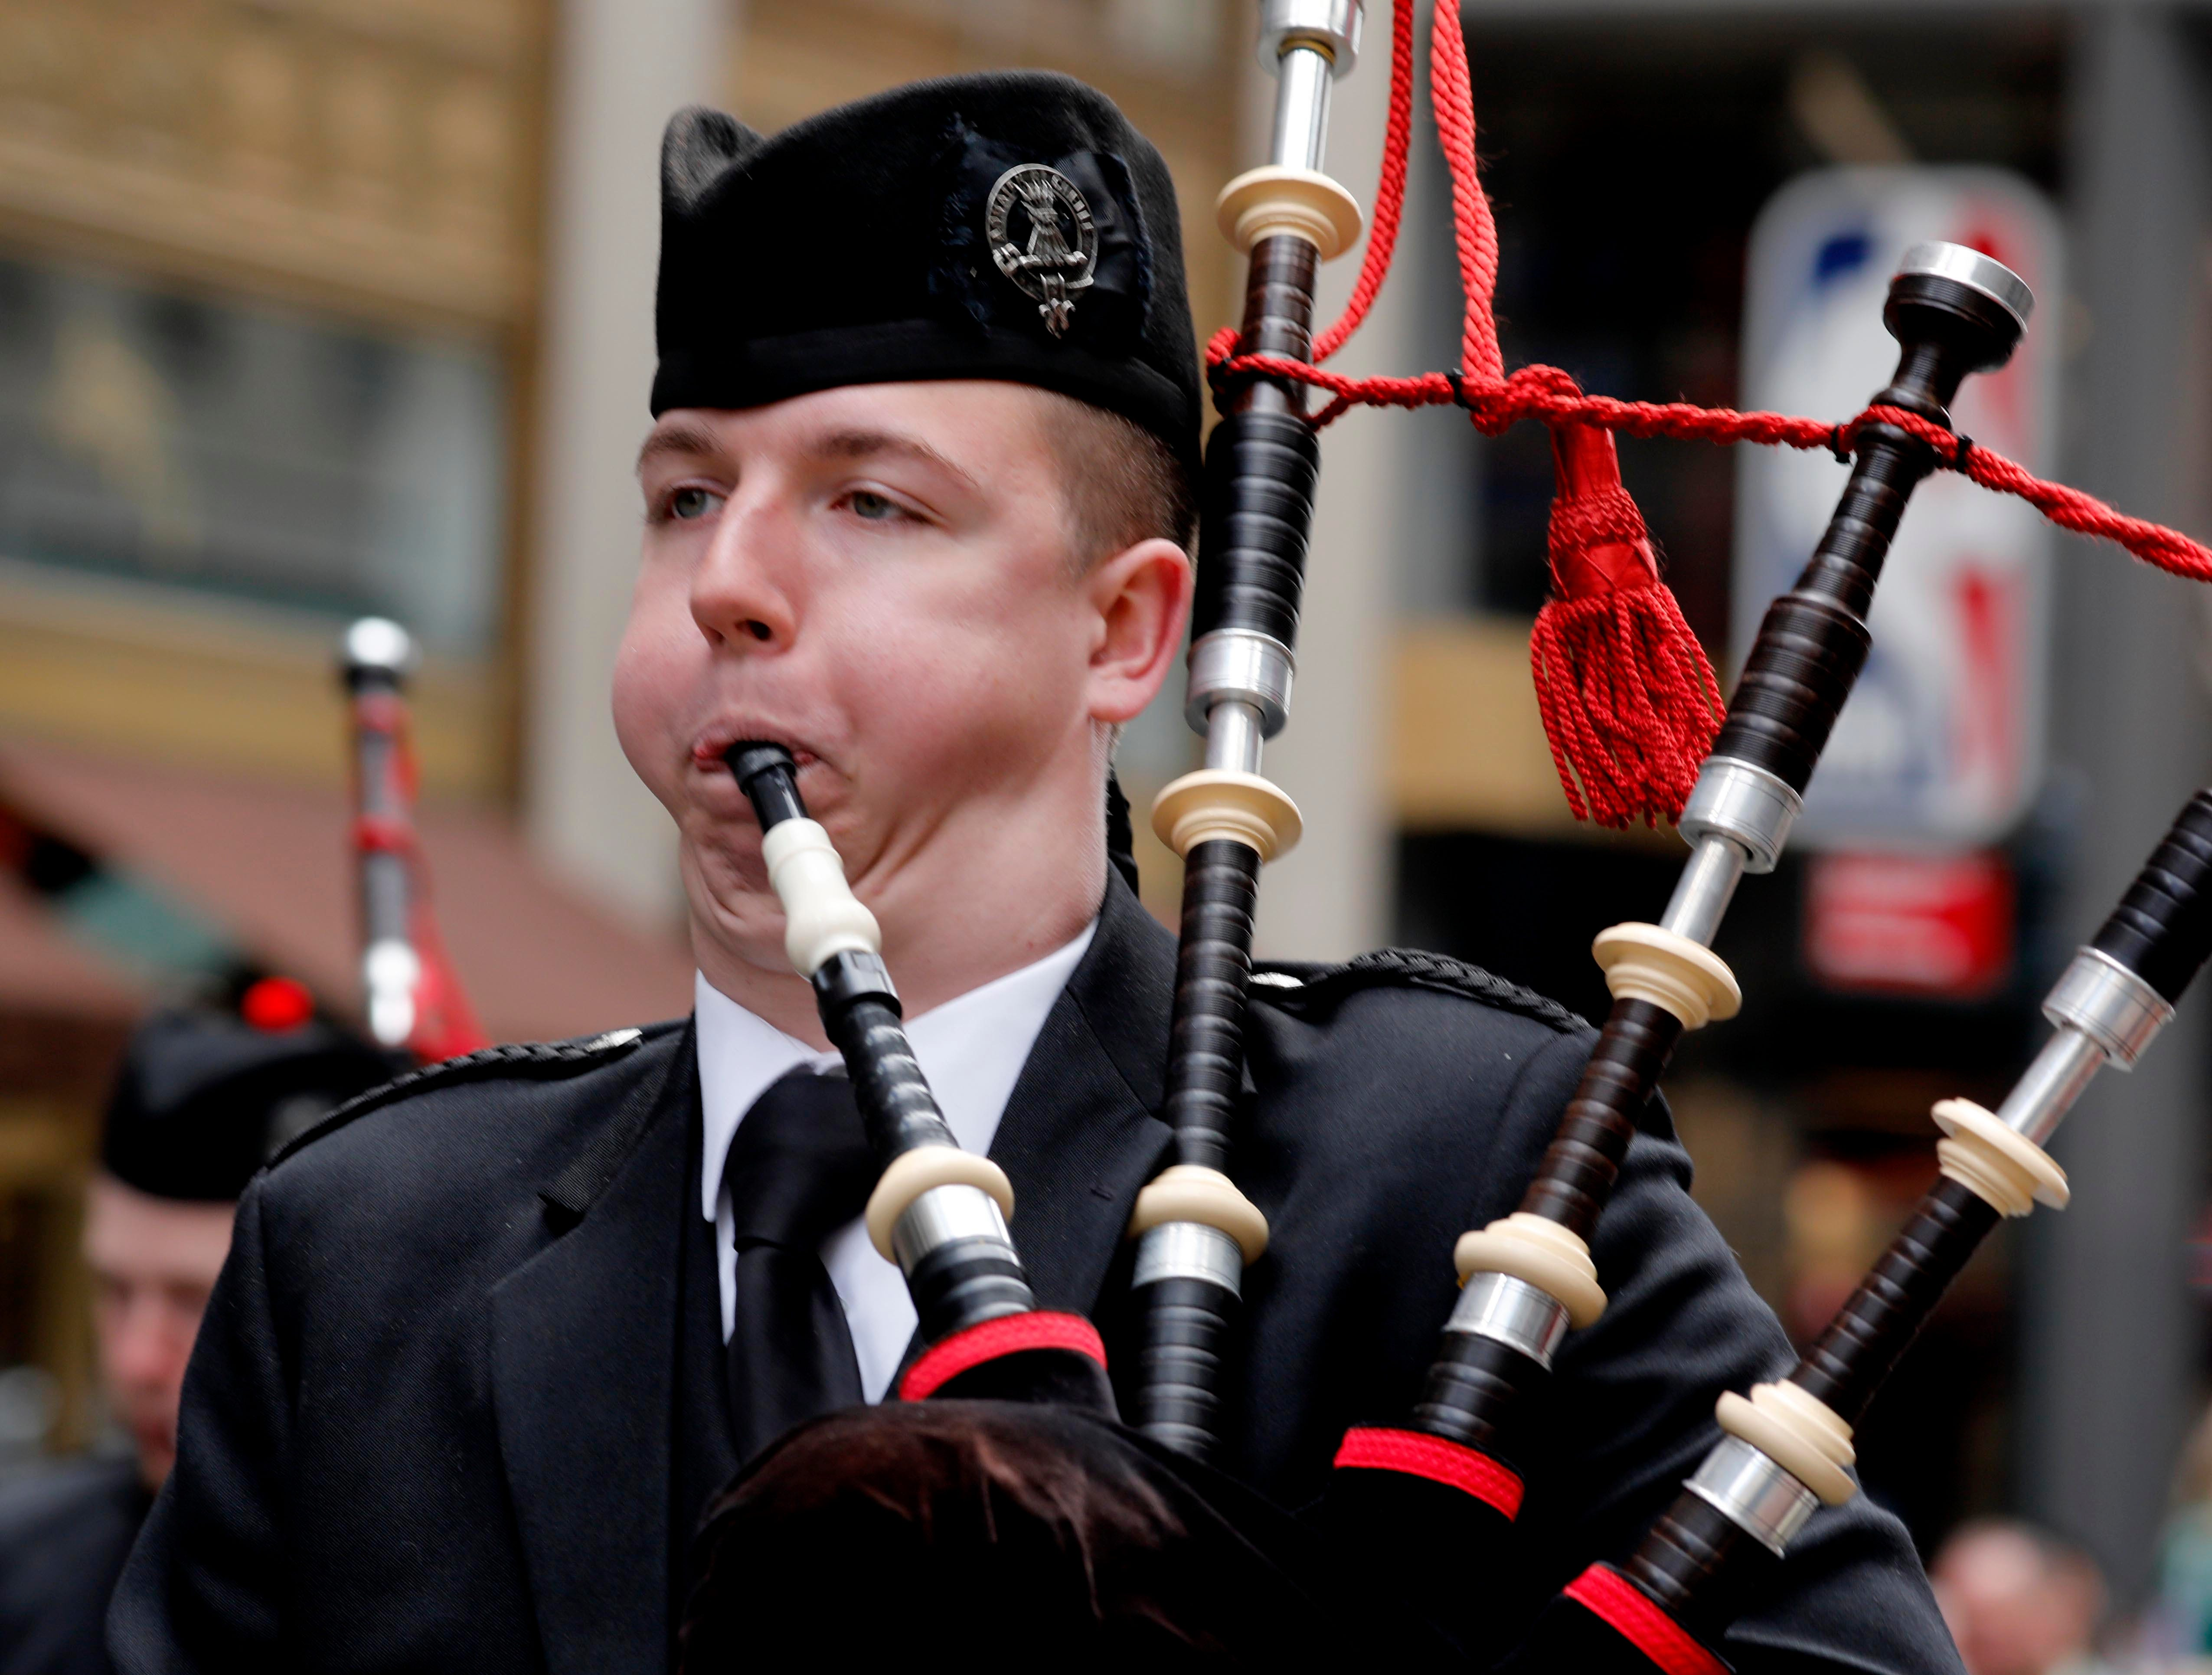 Aidan Alnwick, a bagpiper in the Iona College Pipe Band marches in the 258th annual St. Patrick's Day Parade on March 16, 2019. Hundreds of thousands of people lined Fifth Ave. as the parade made its way from 44th St. up to 79th St.